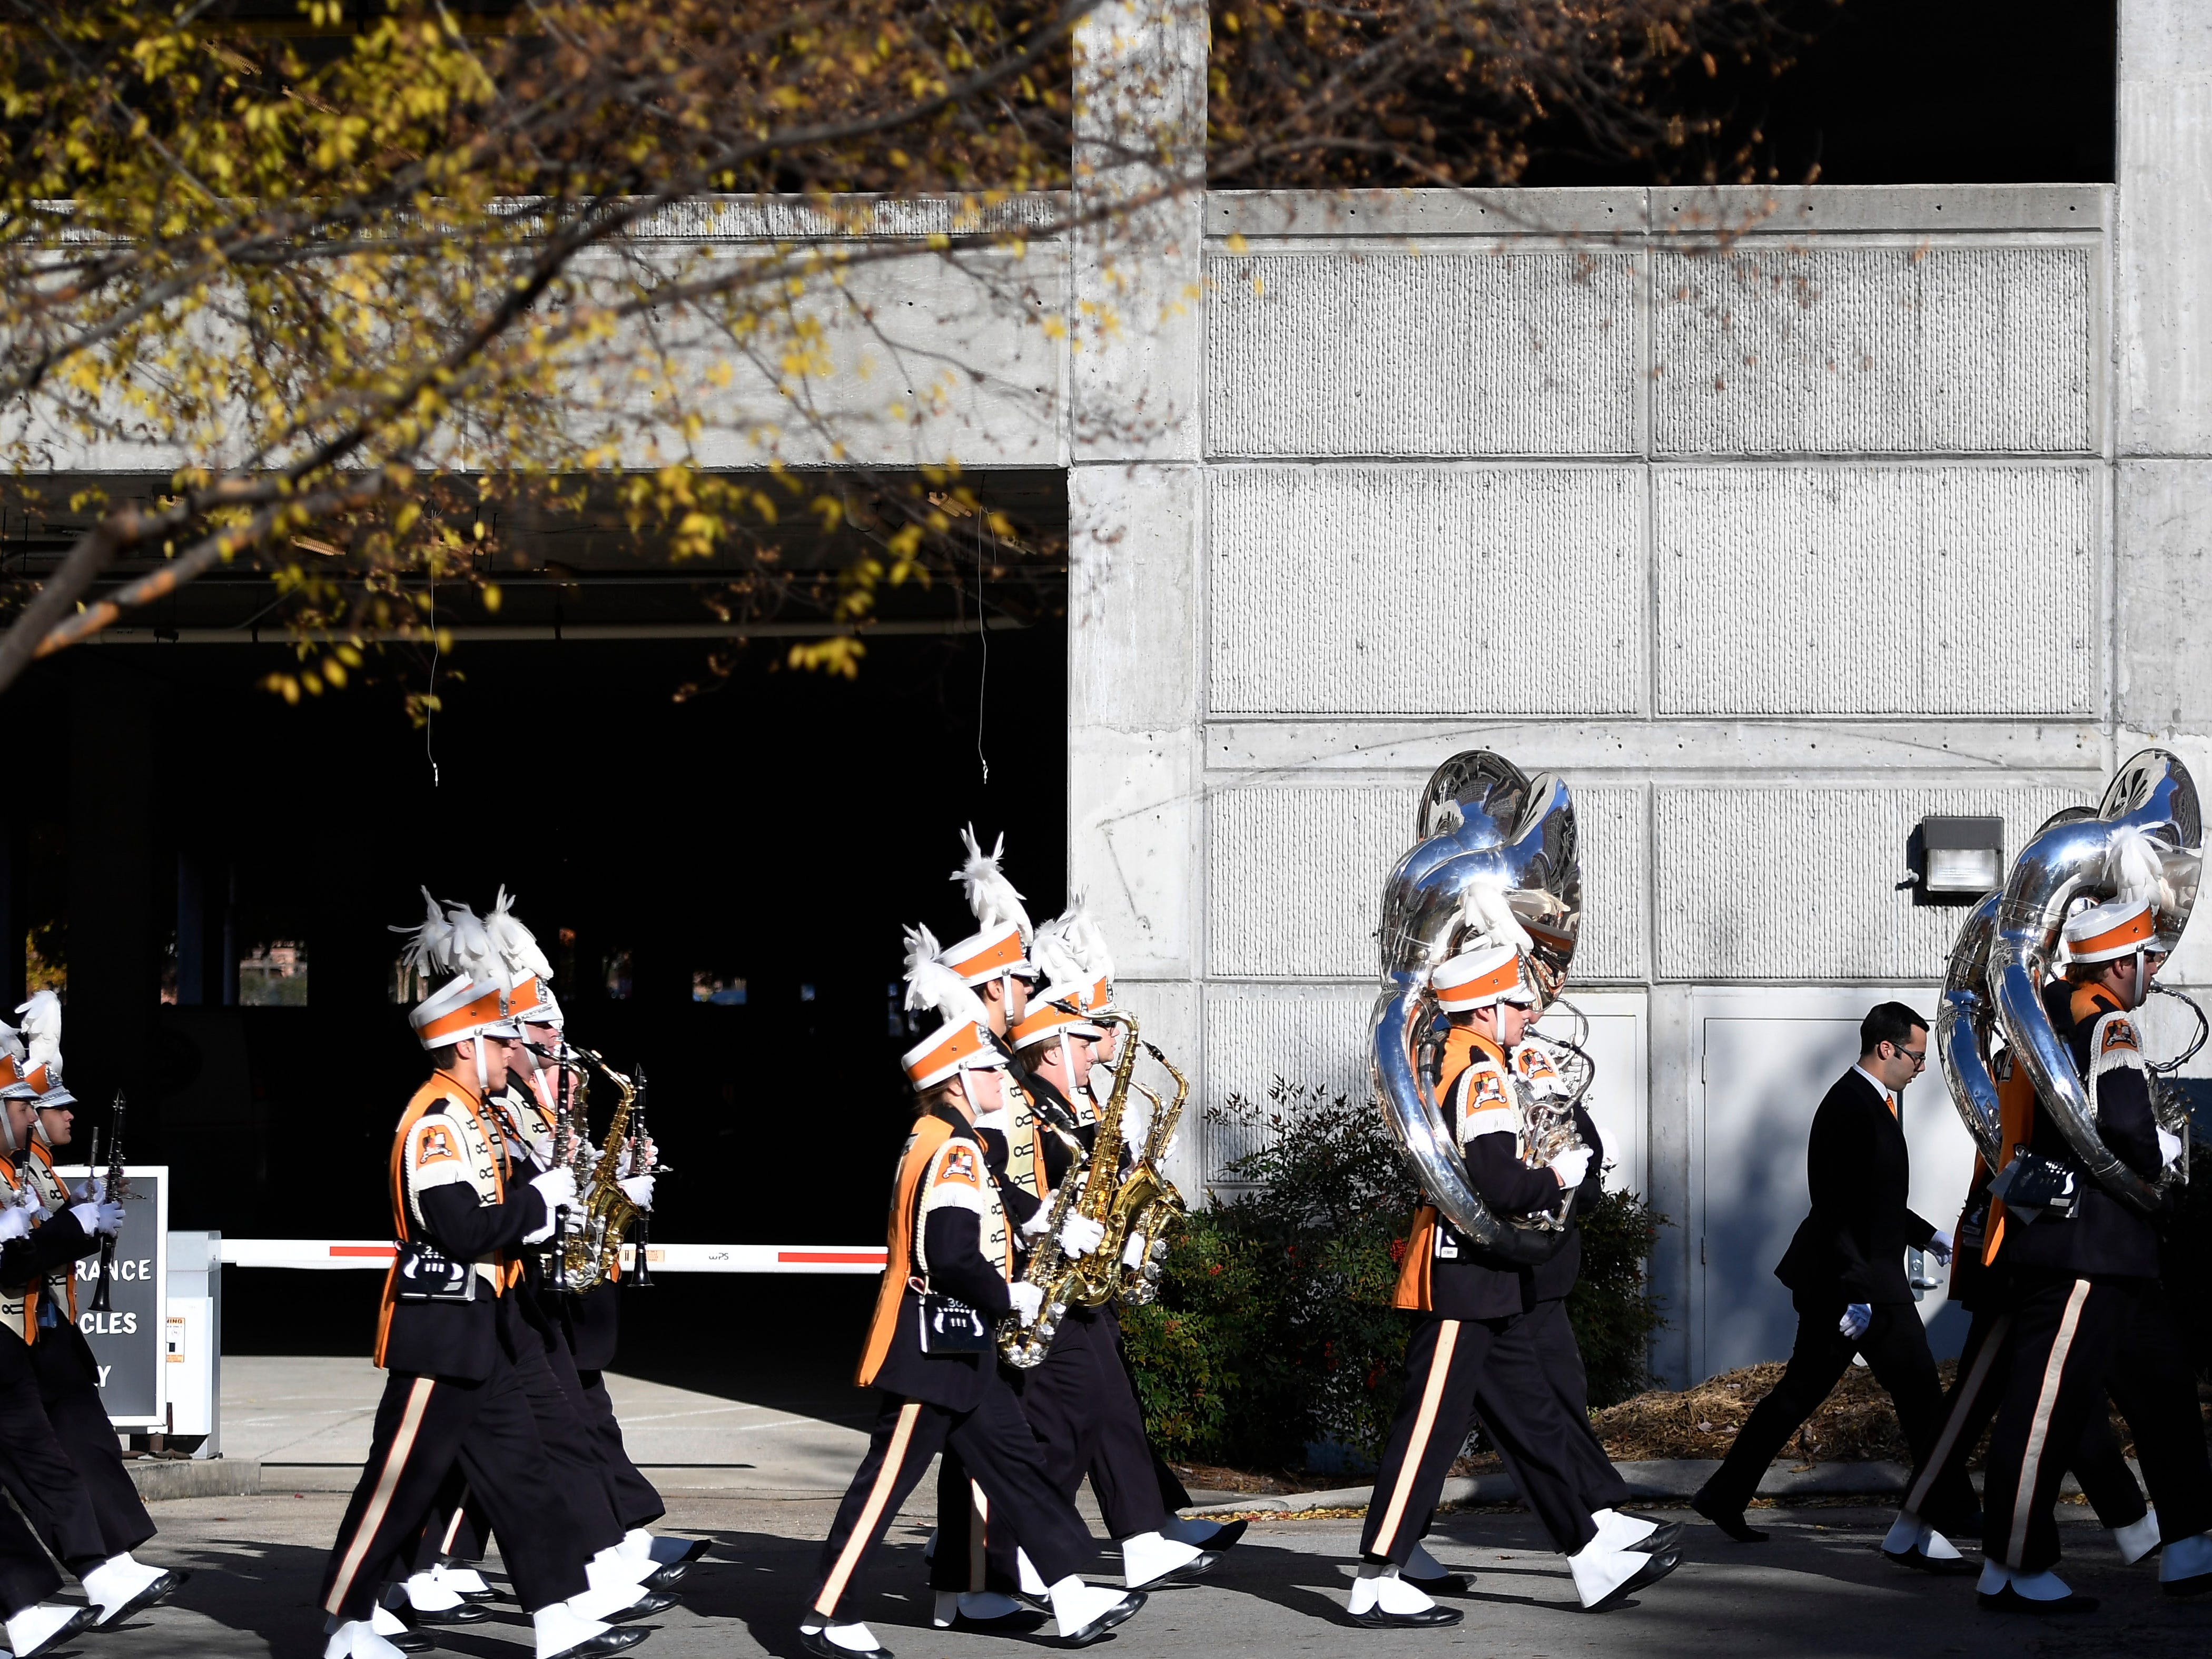 The Tennessee band marches in before the game at Vanderbilt Stadium Saturday, Nov. 24, 2018, in Nashville, Tenn.